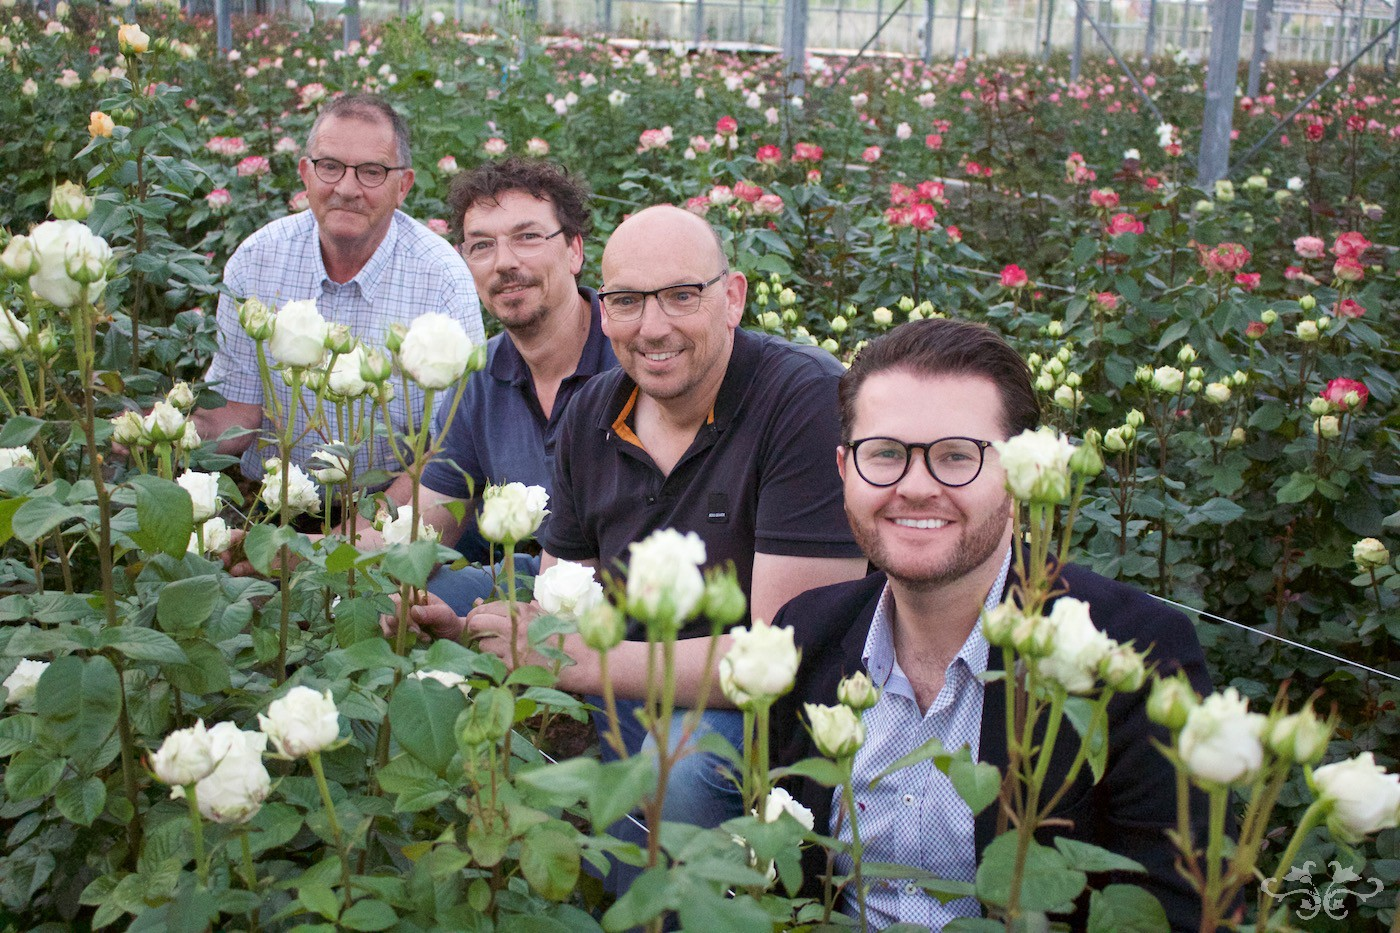 Neill Strain with Marc and Ed Sassen and Loek Van Eeden amidst the Belgravia Roses at the VIP glasshouse